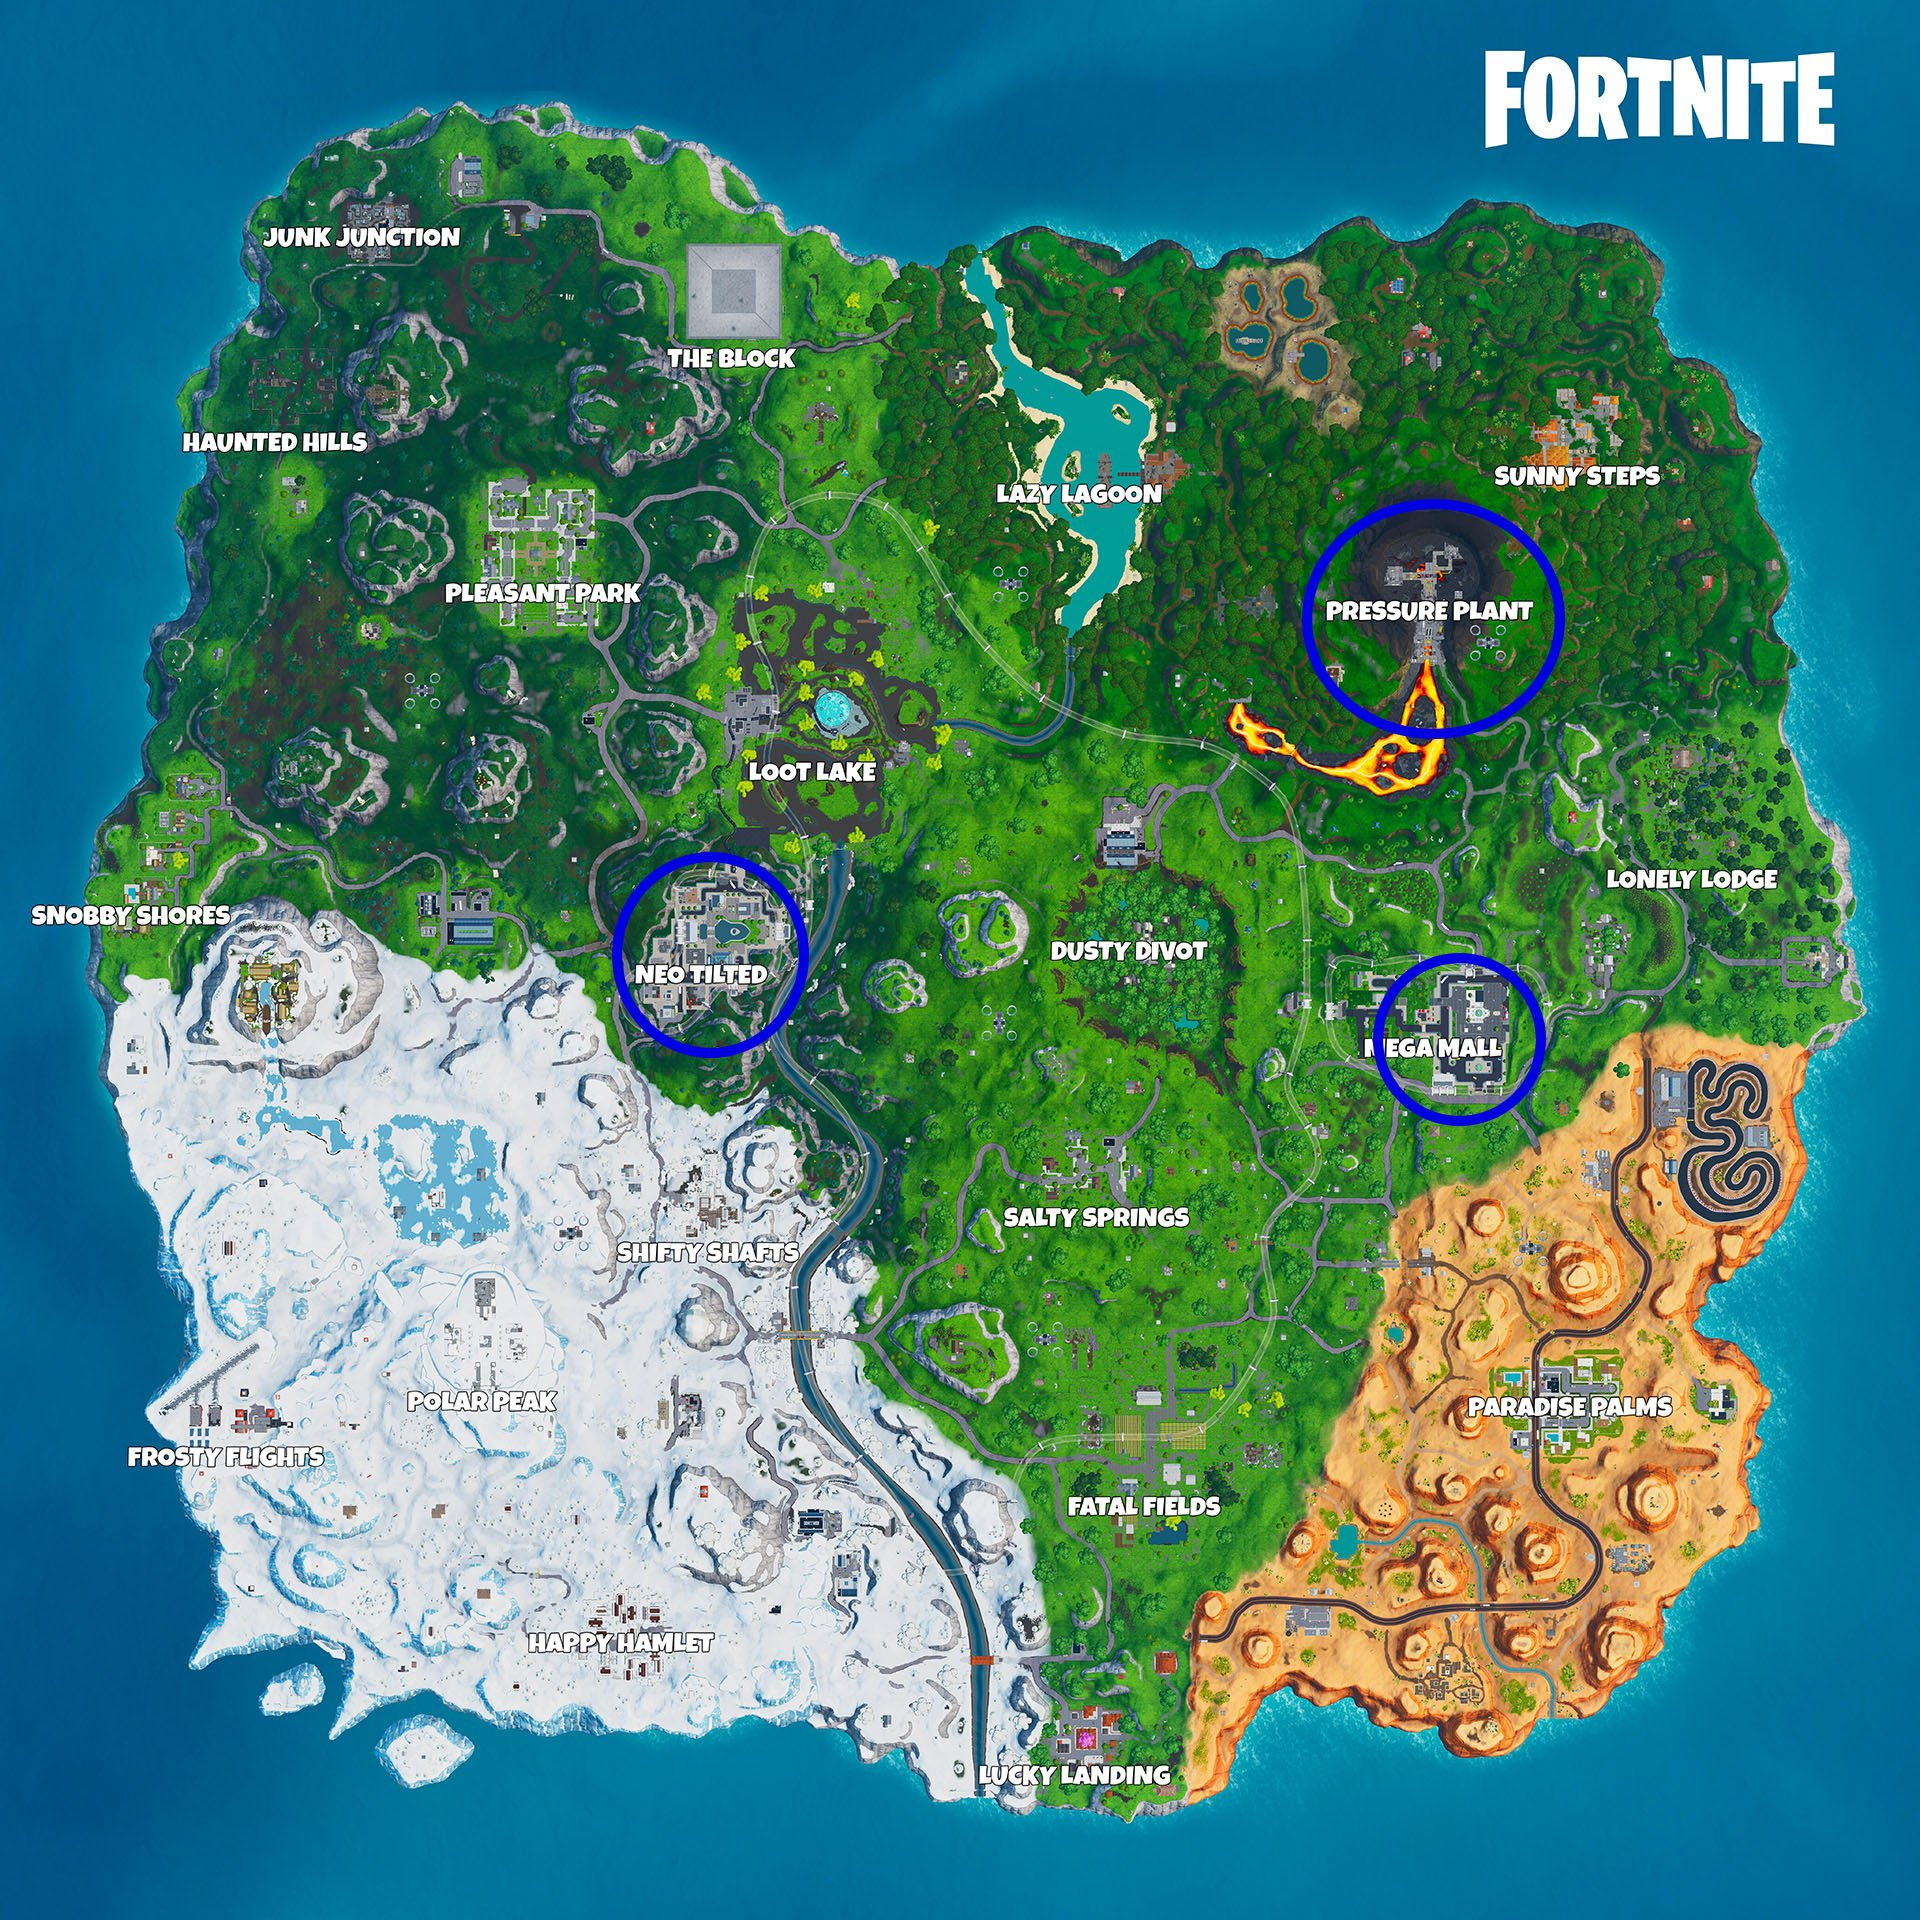 Where to find public service announcement signs in Fortnite